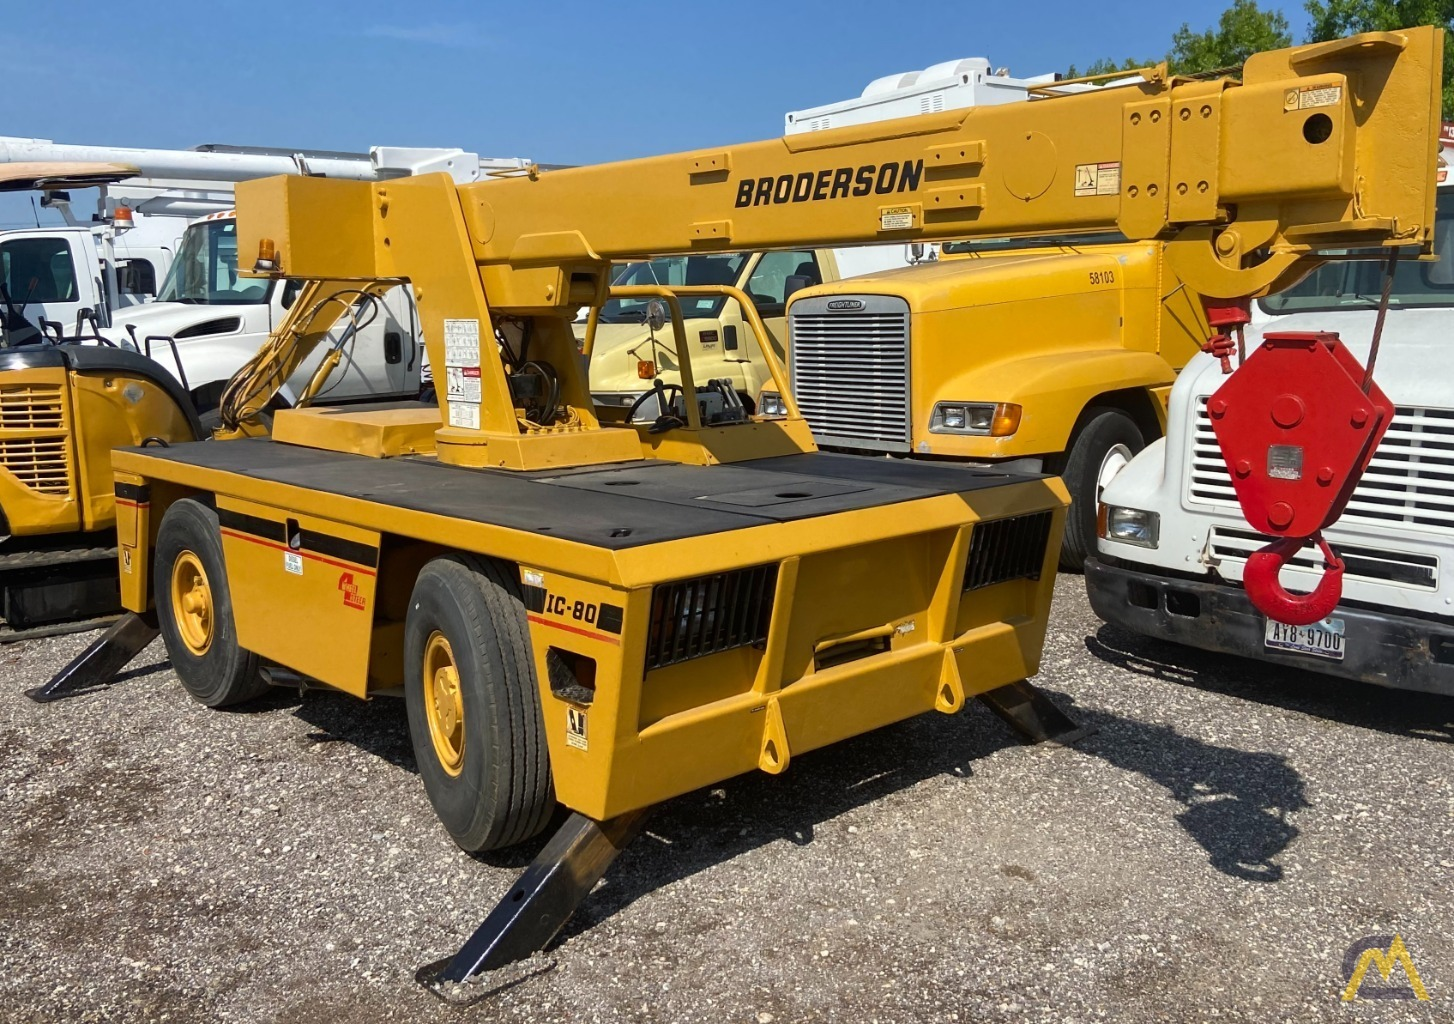 Broderson IC-80-3G 9-Ton Carry Deck Industrial Crane 0